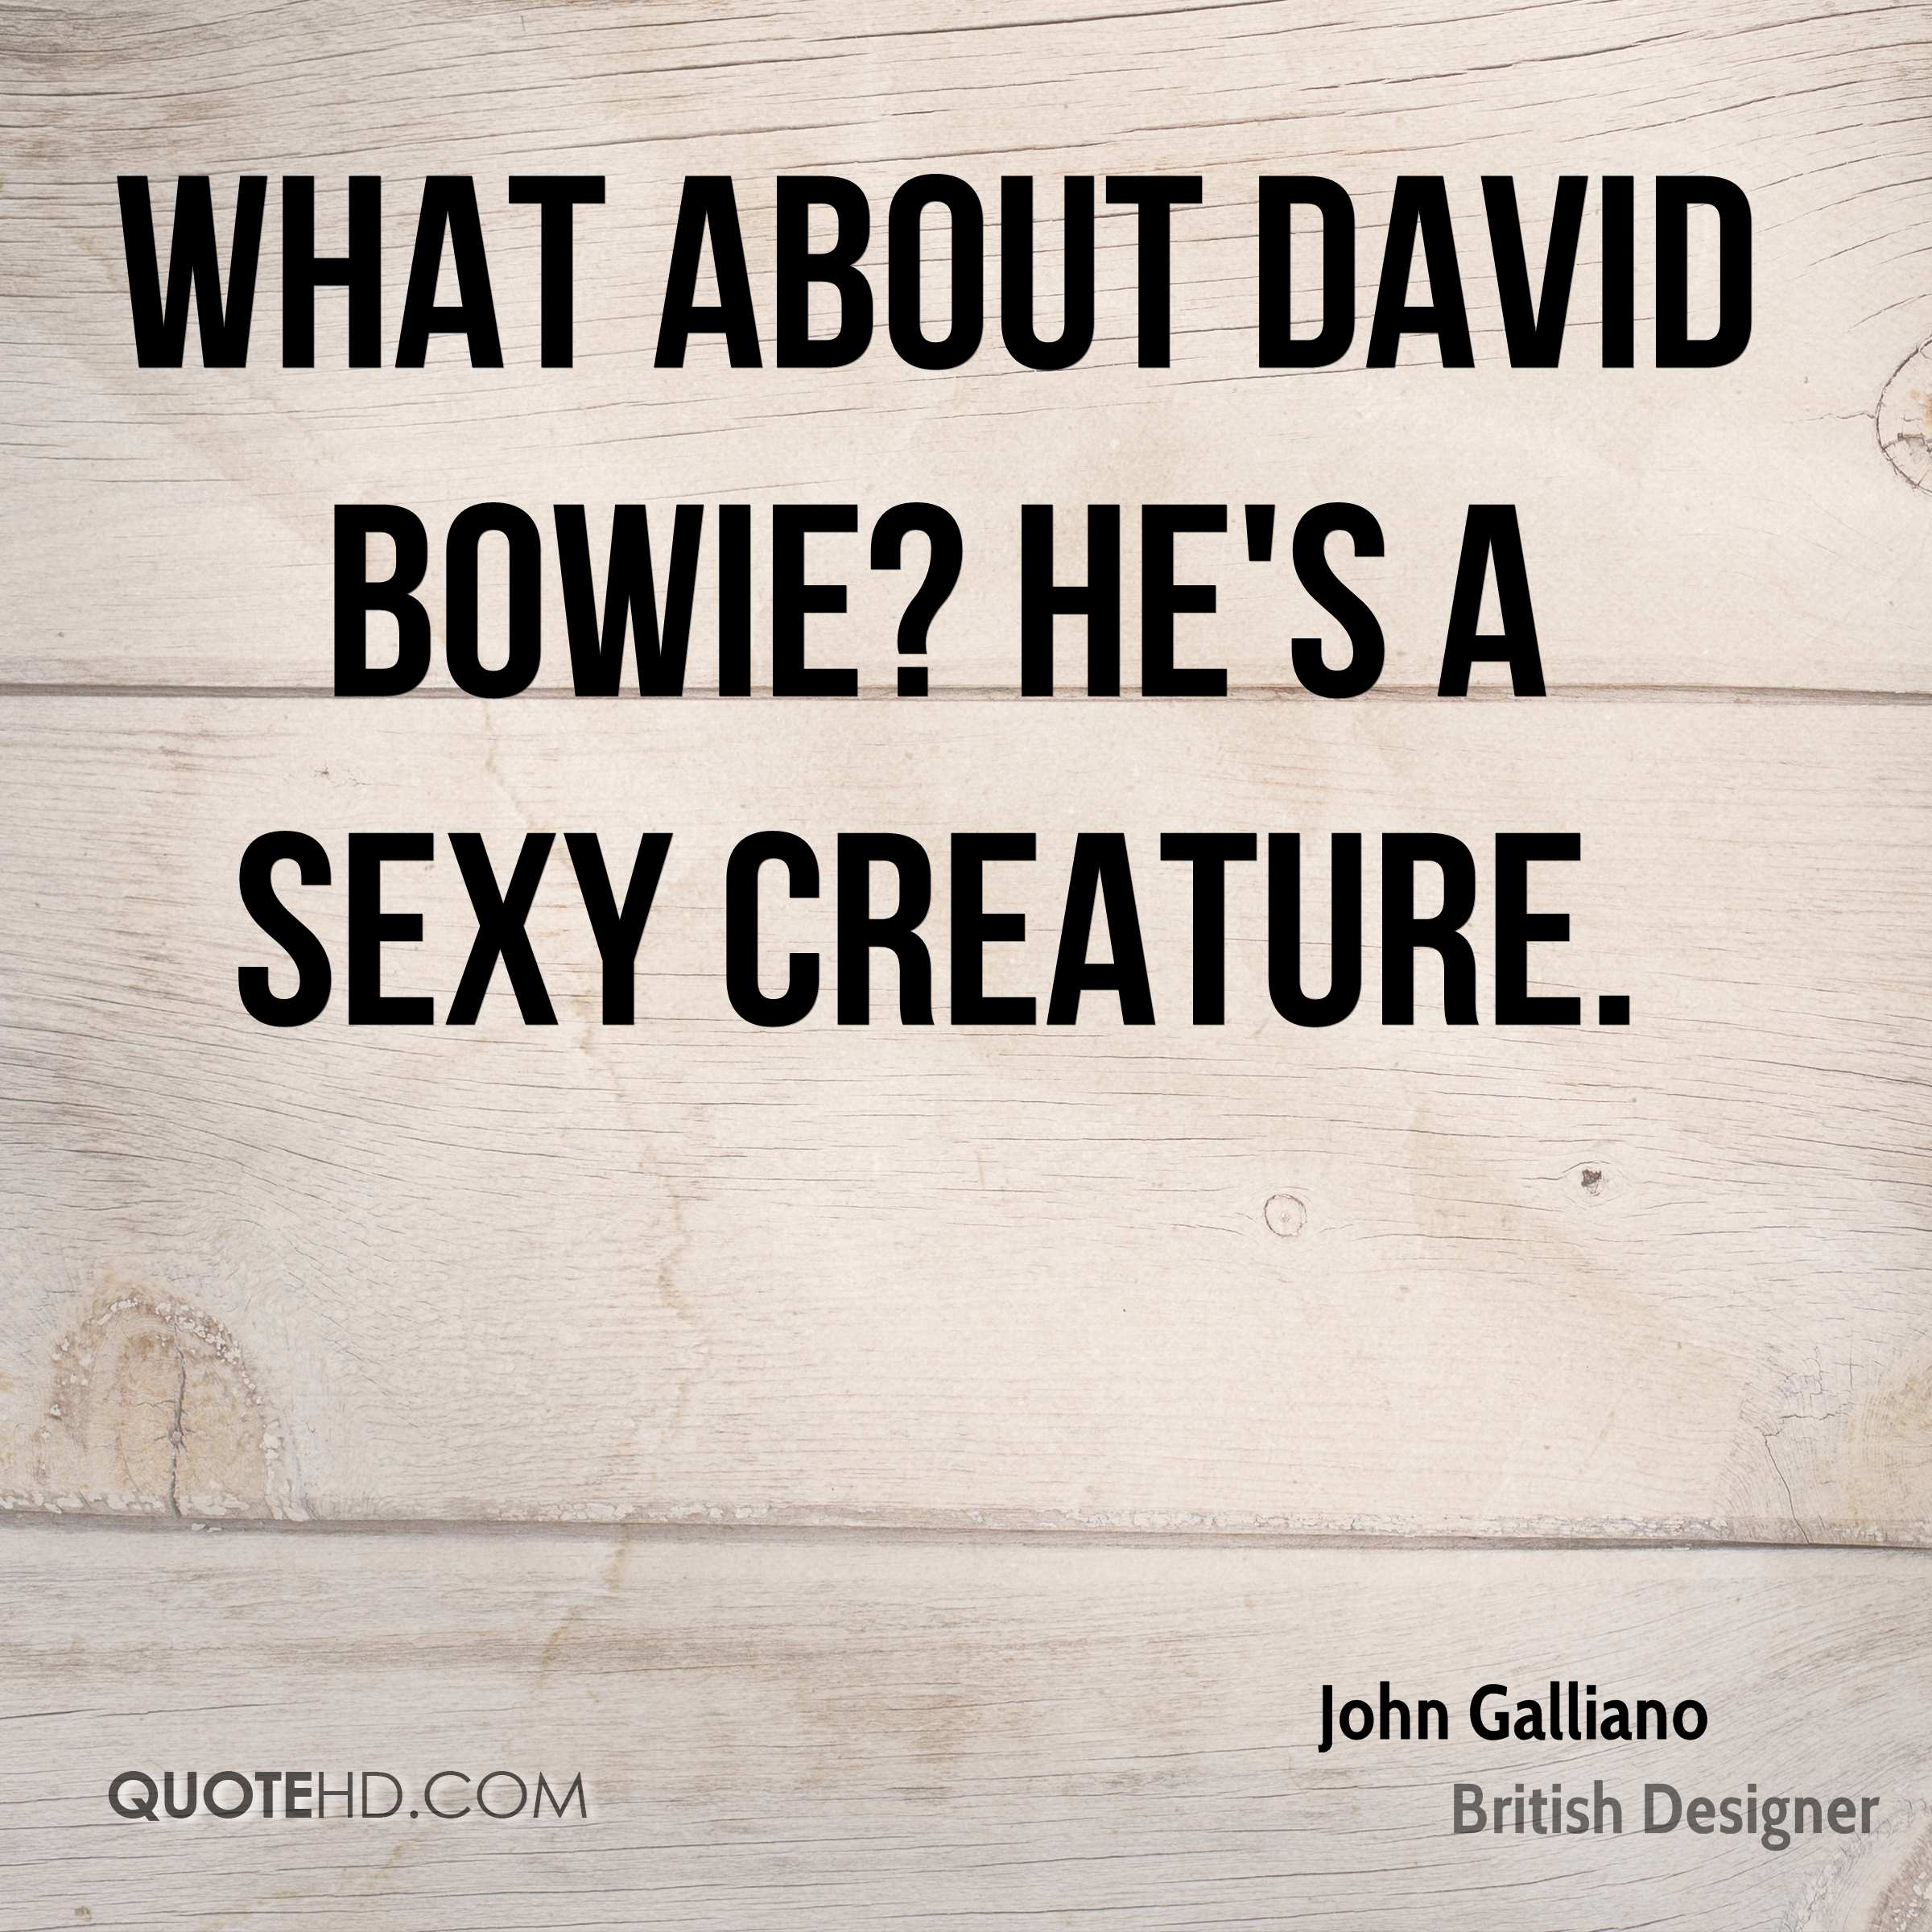 What about David Bowie? He's a sexy creature.